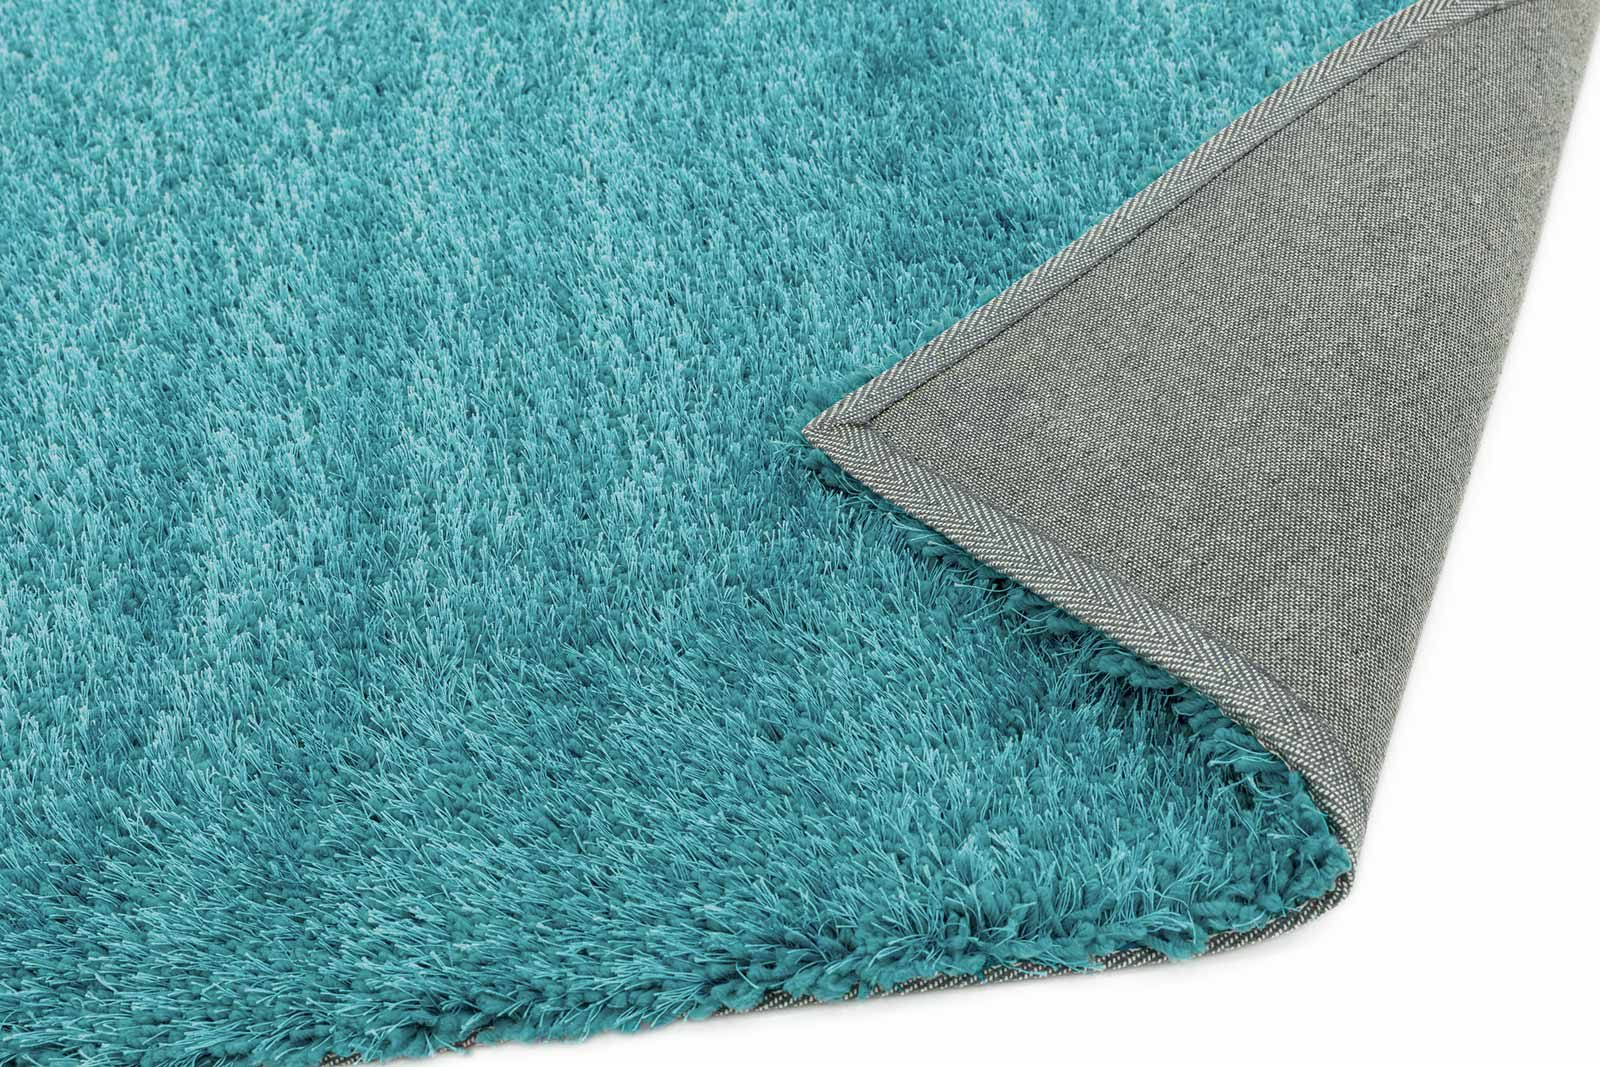 Andessi rug Mythica Teal detail 3